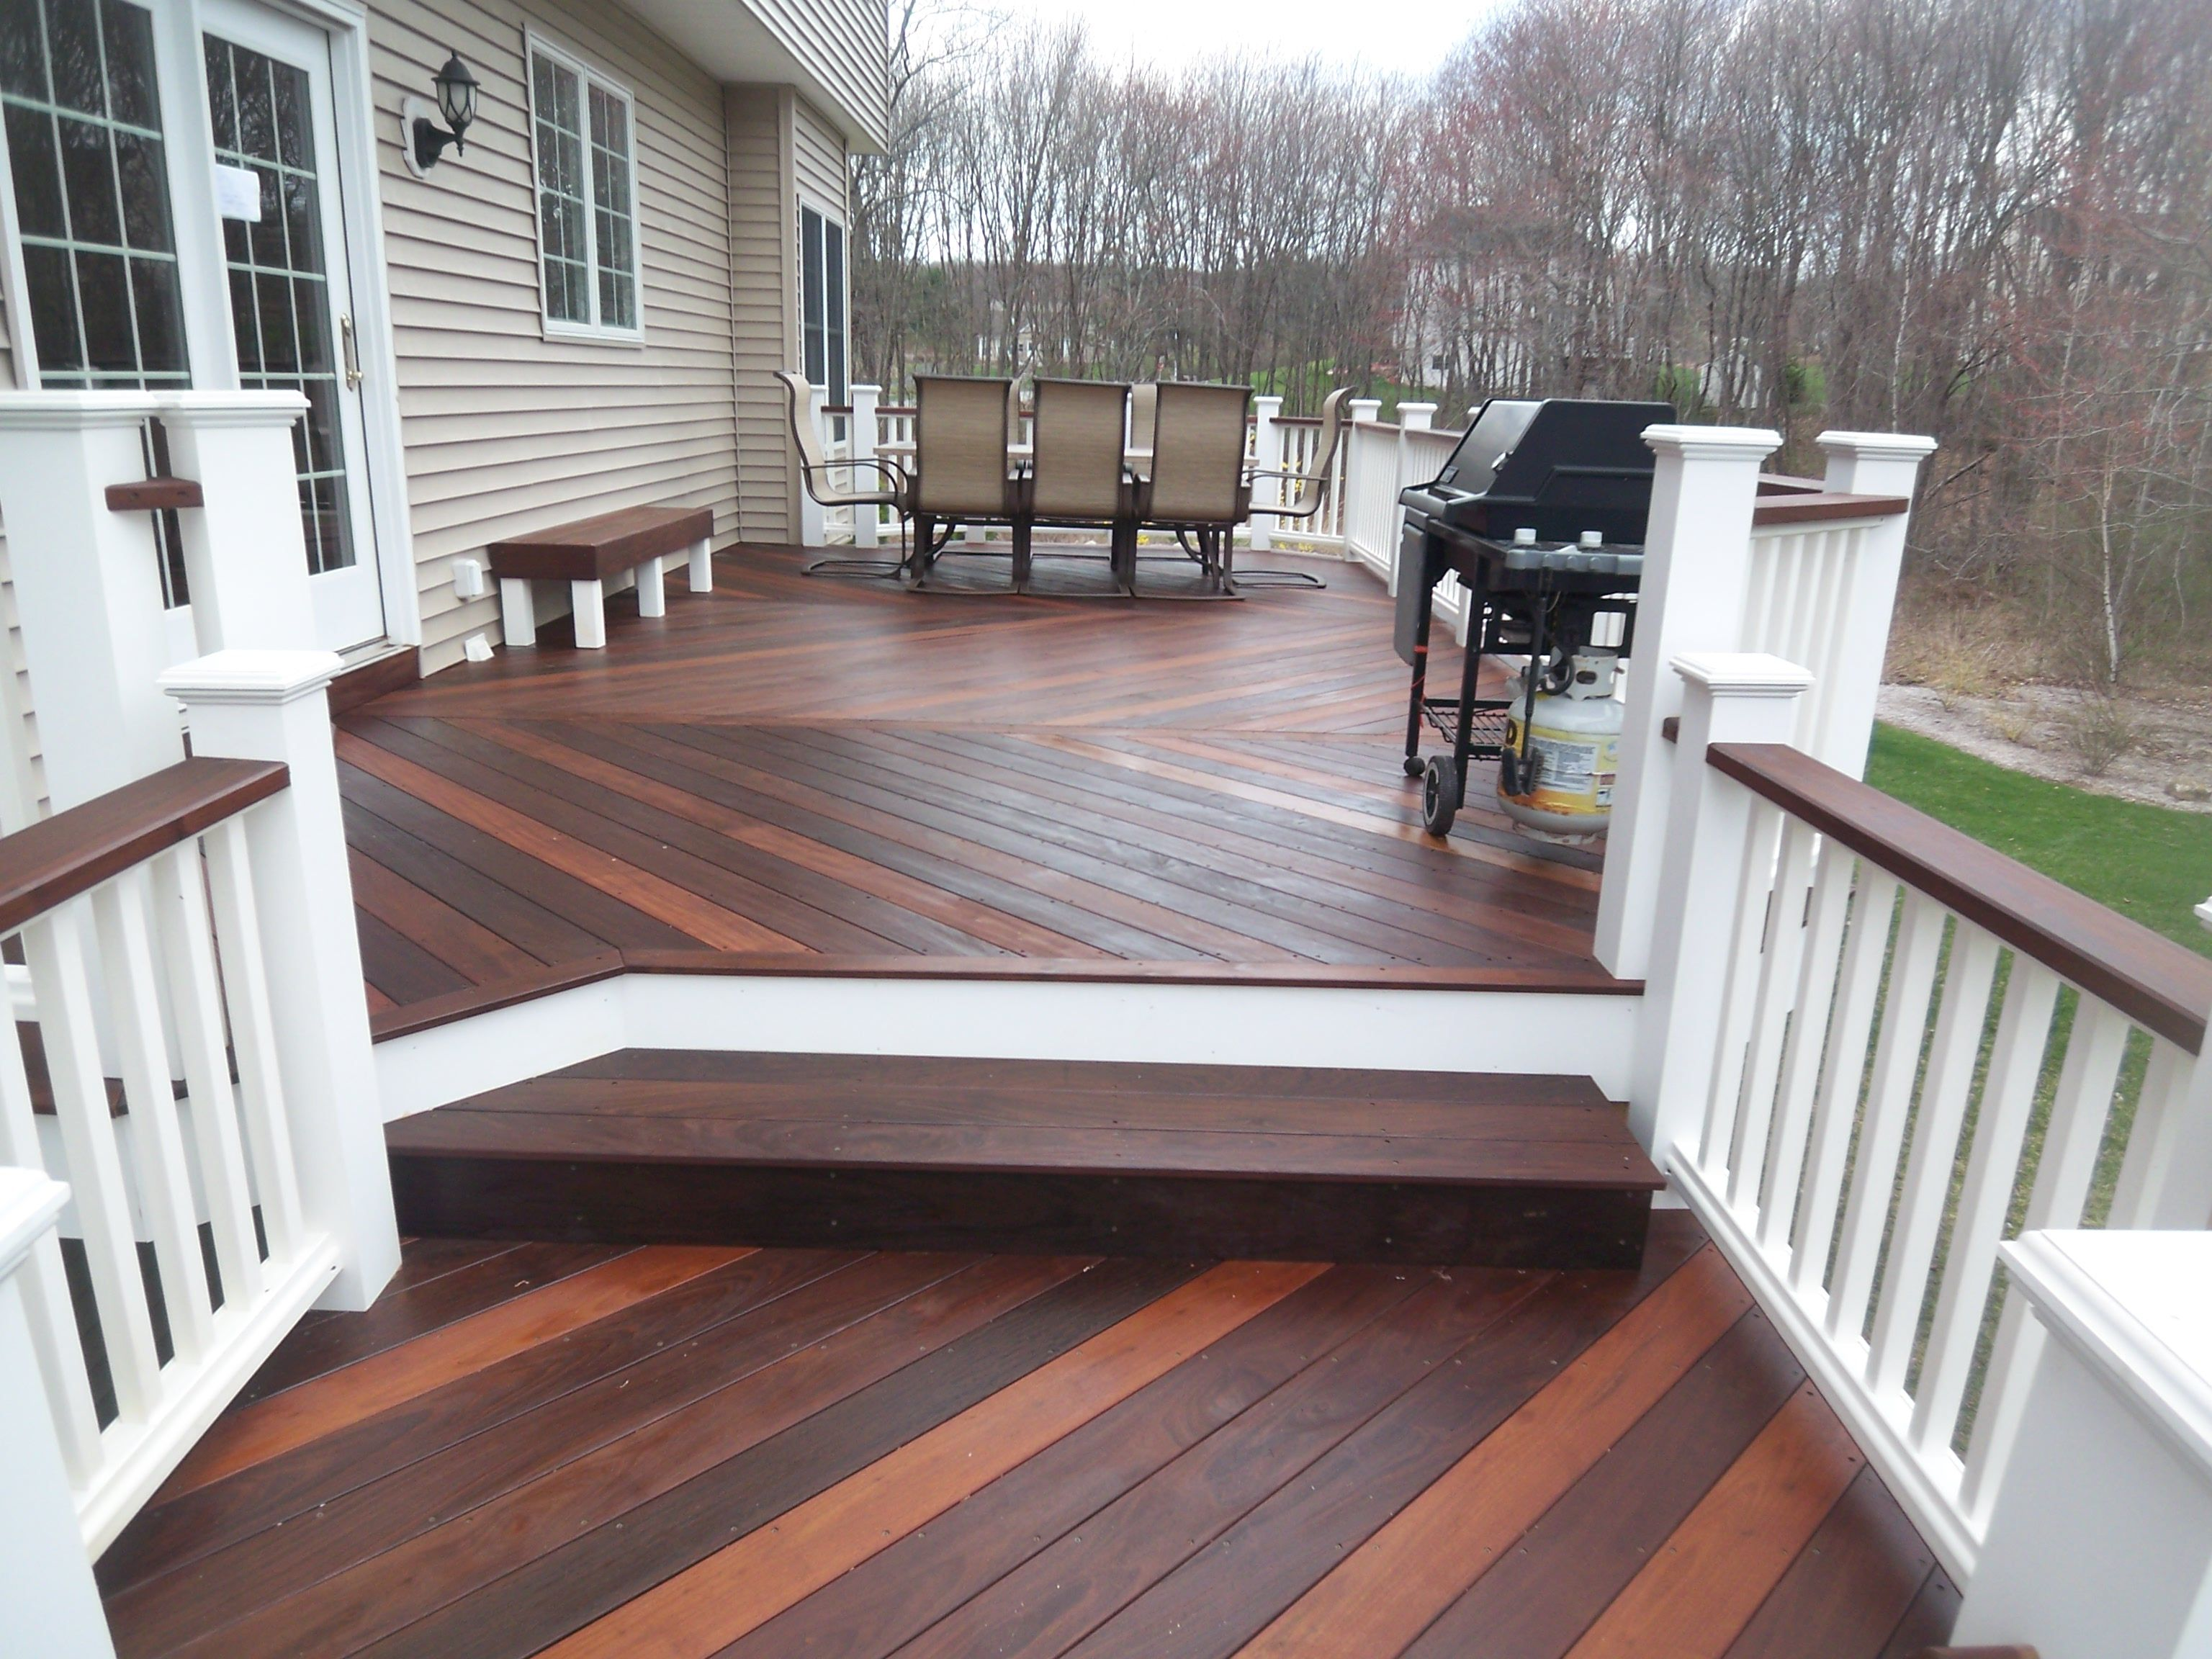 Vinyl Deck Design Ideas Collection Of Deck Pictures And Deck